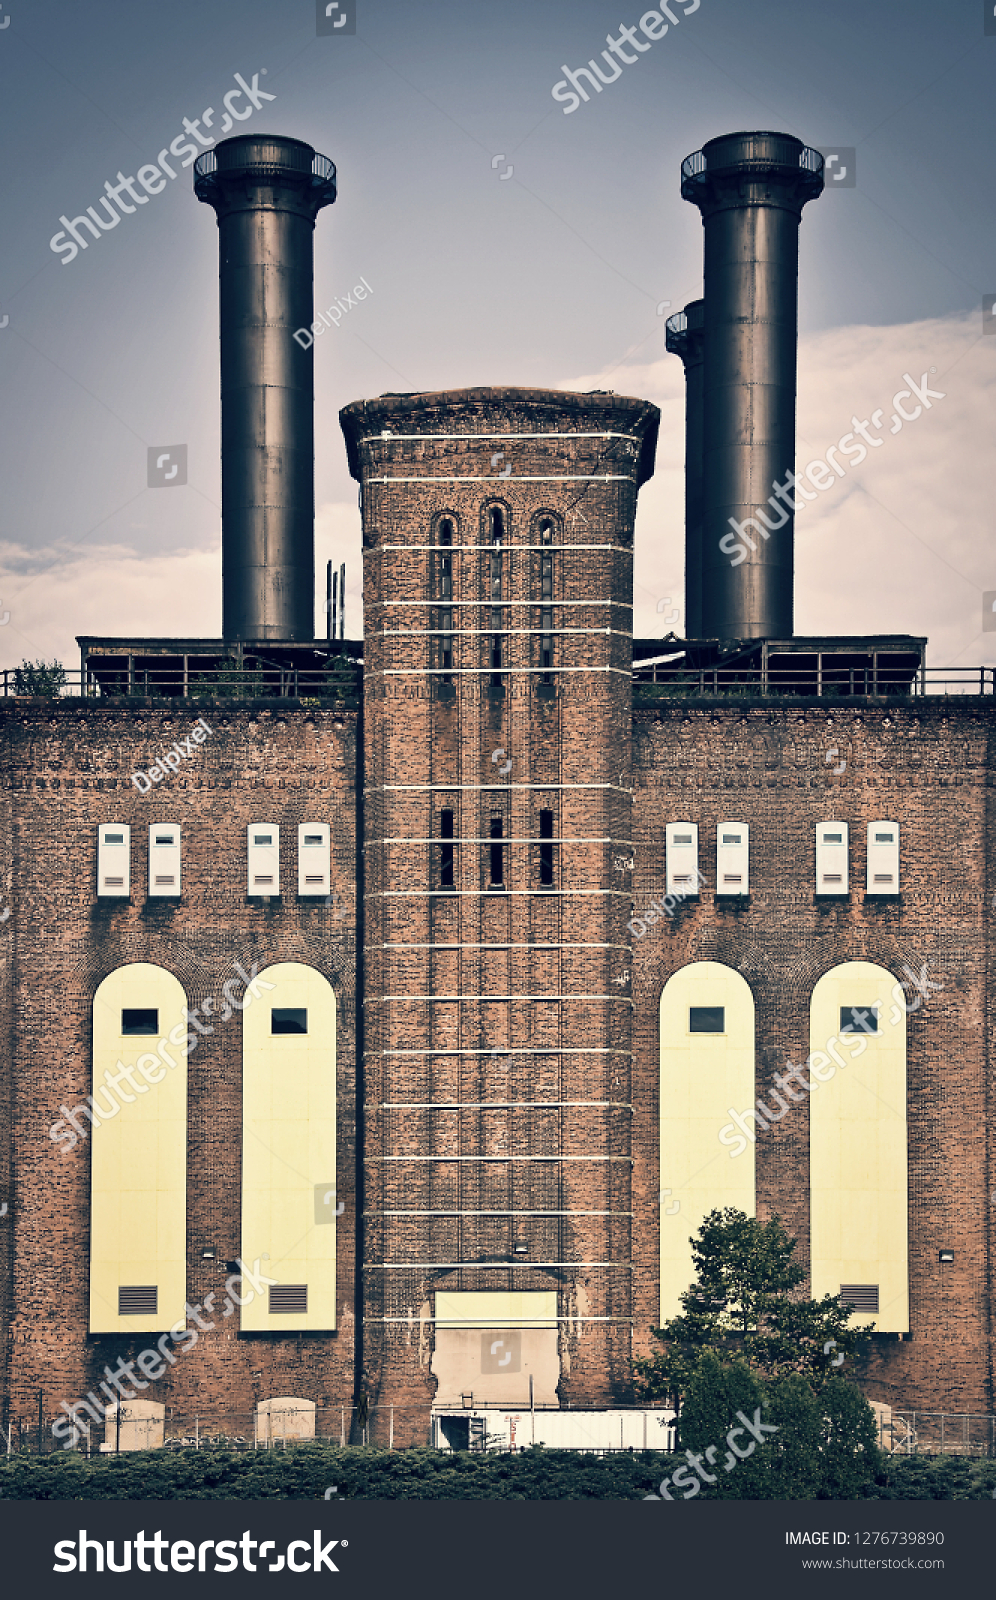 The powerhouse, ancient industrial brick building in Jersey city, New Jersey, USA #1276739890